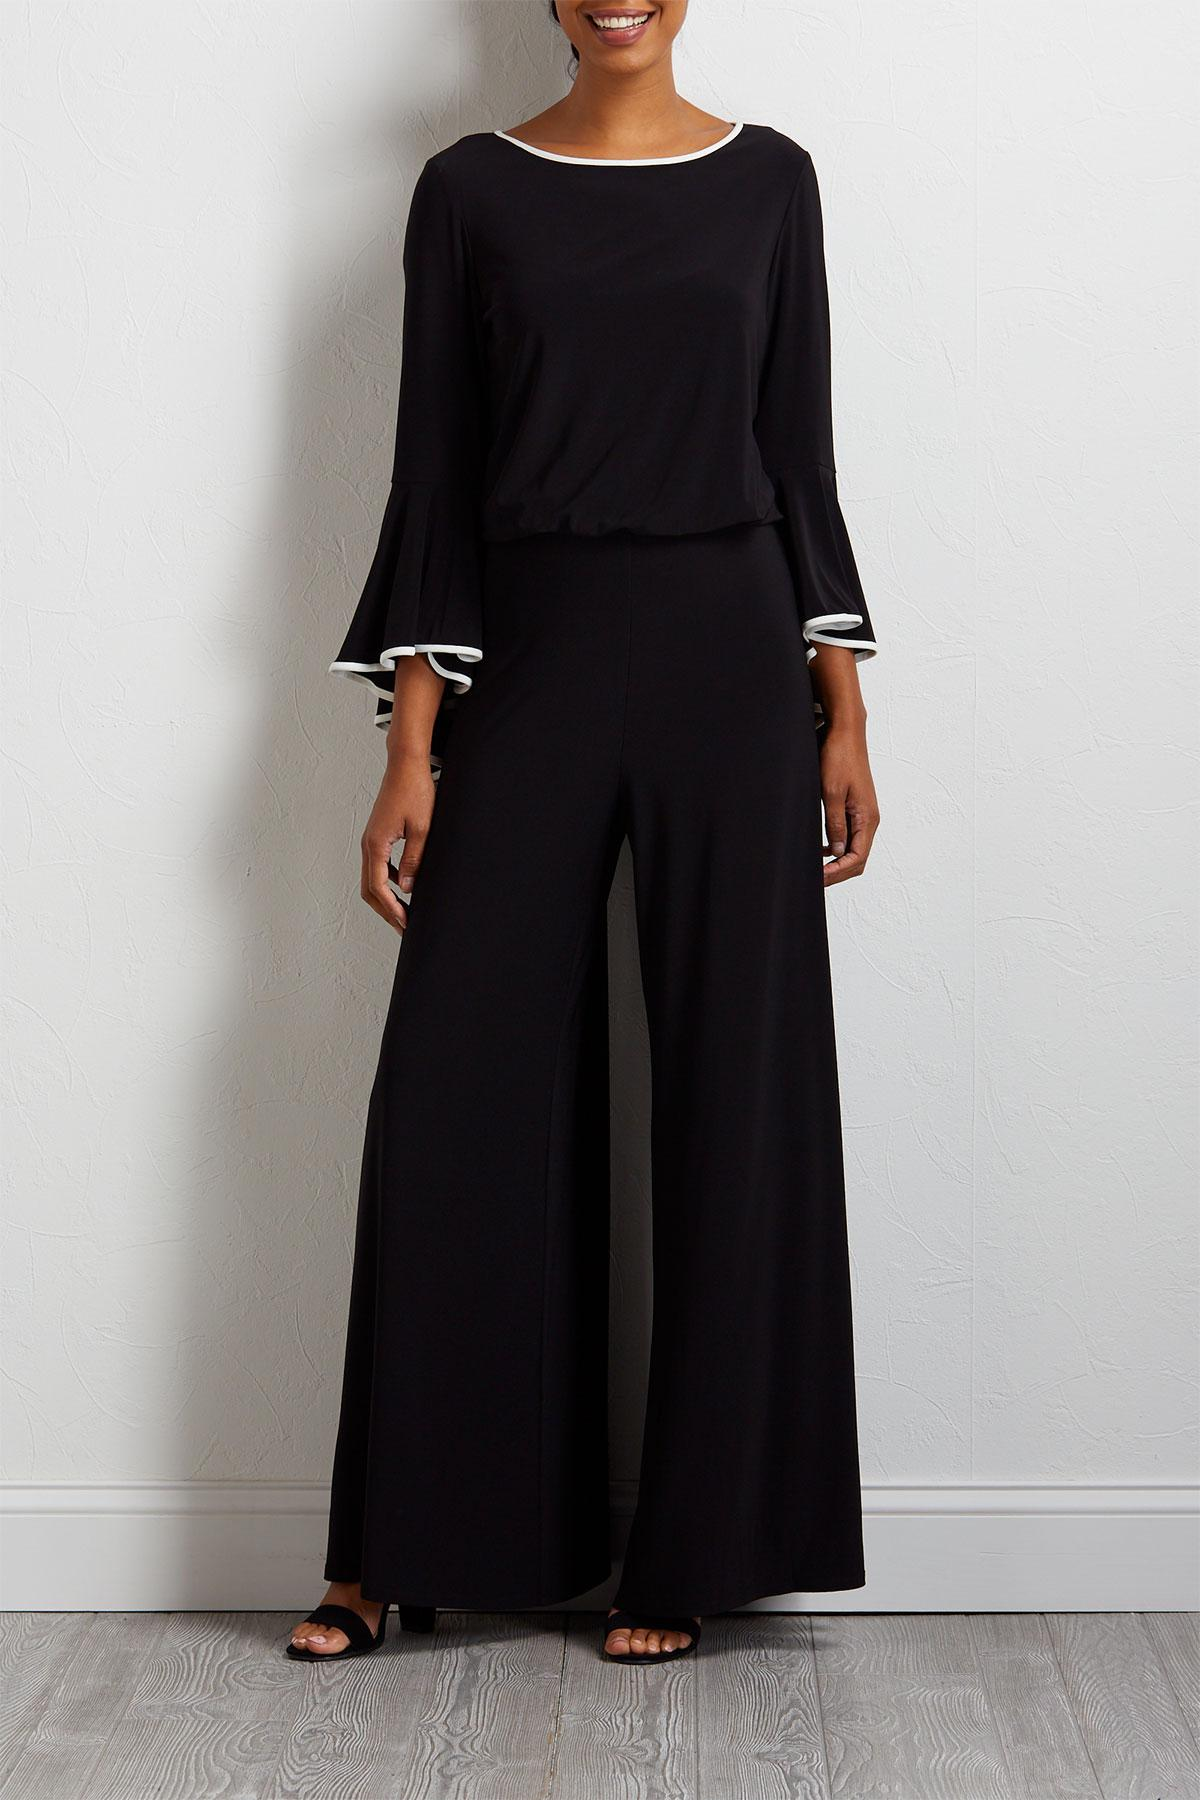 Versona Two Toned Dressy Jumpsuit